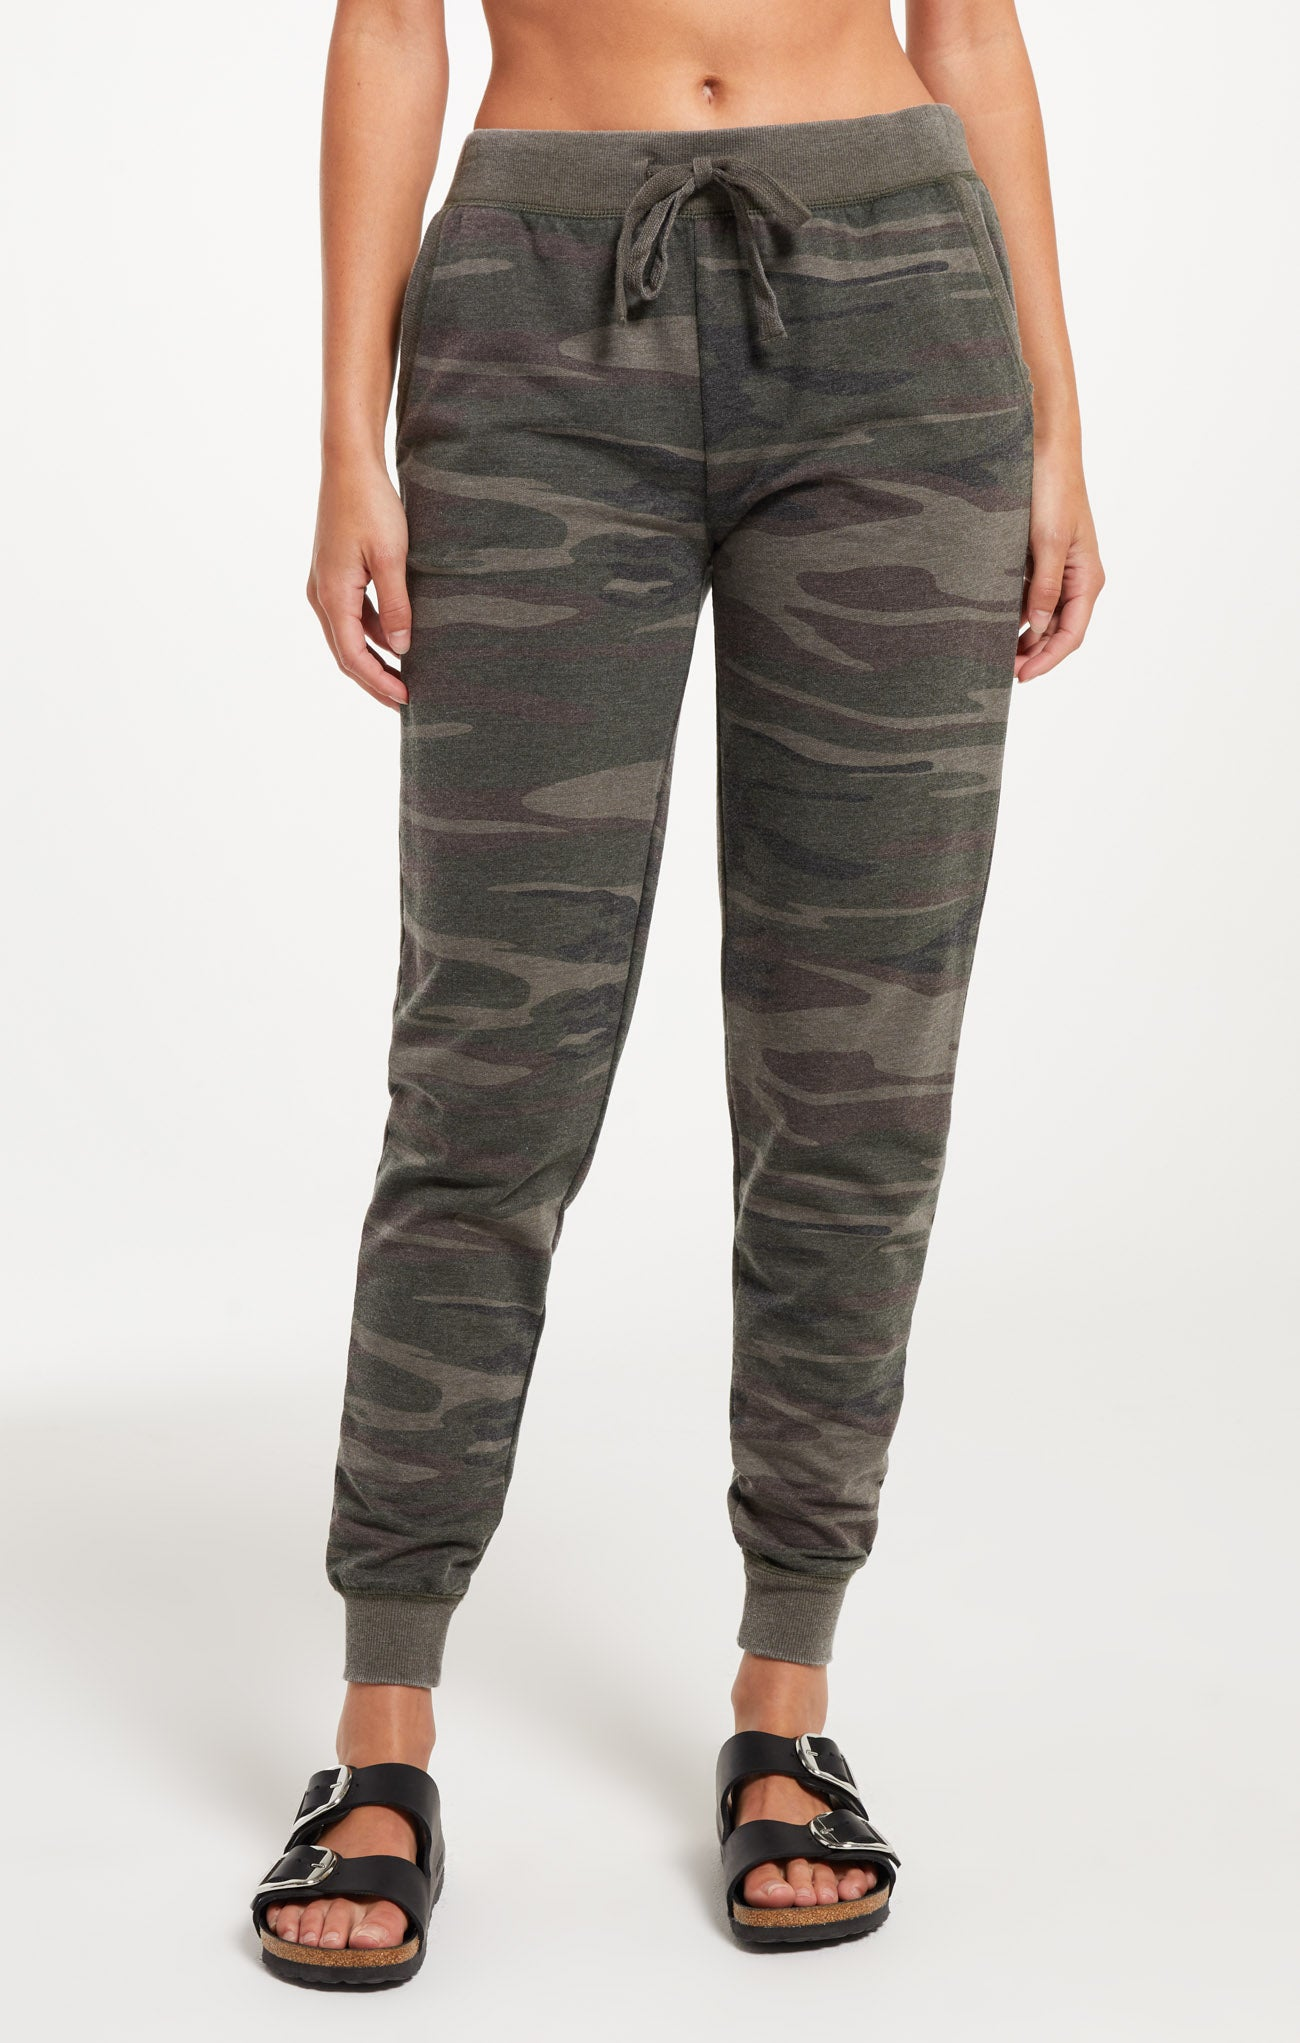 Pants Camo Jogger Pant Camo Forest Green